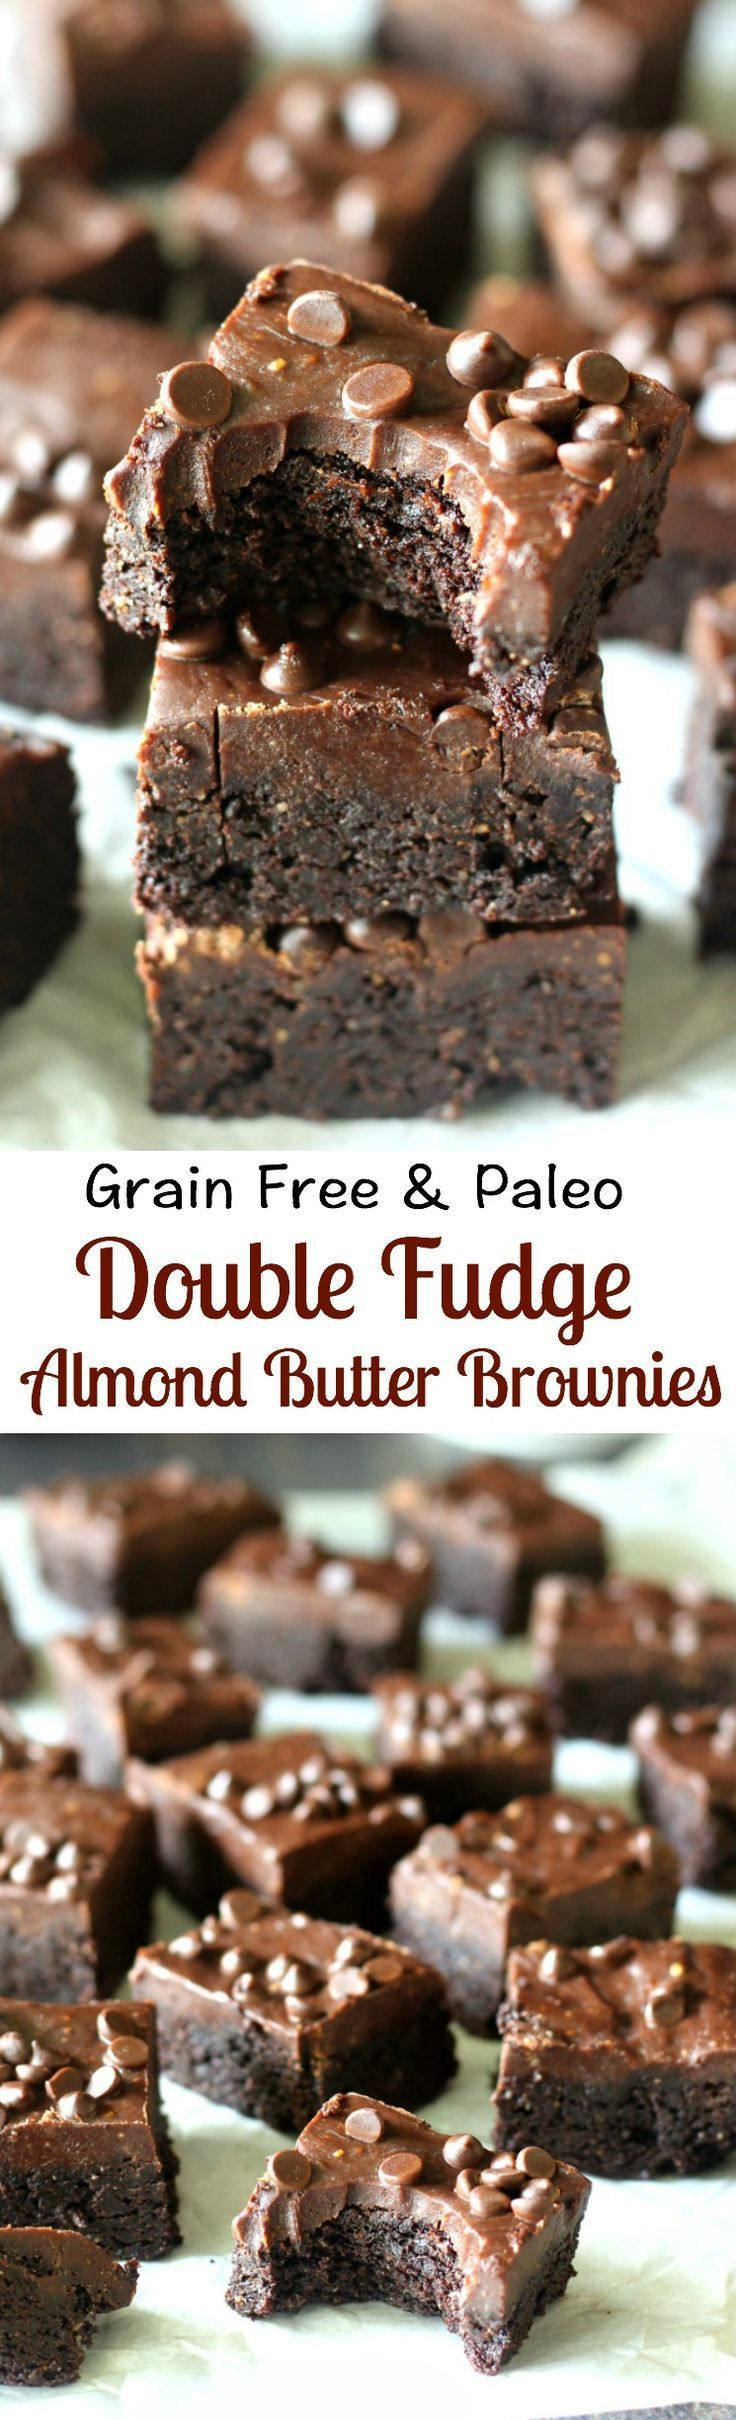 Grain Free and Paleo Double Fudge Almond Butter Brownies - rich, decadent, gluten free, dairy free, soy free, no refined sugar.  Best Paleo brownies I've made to date!